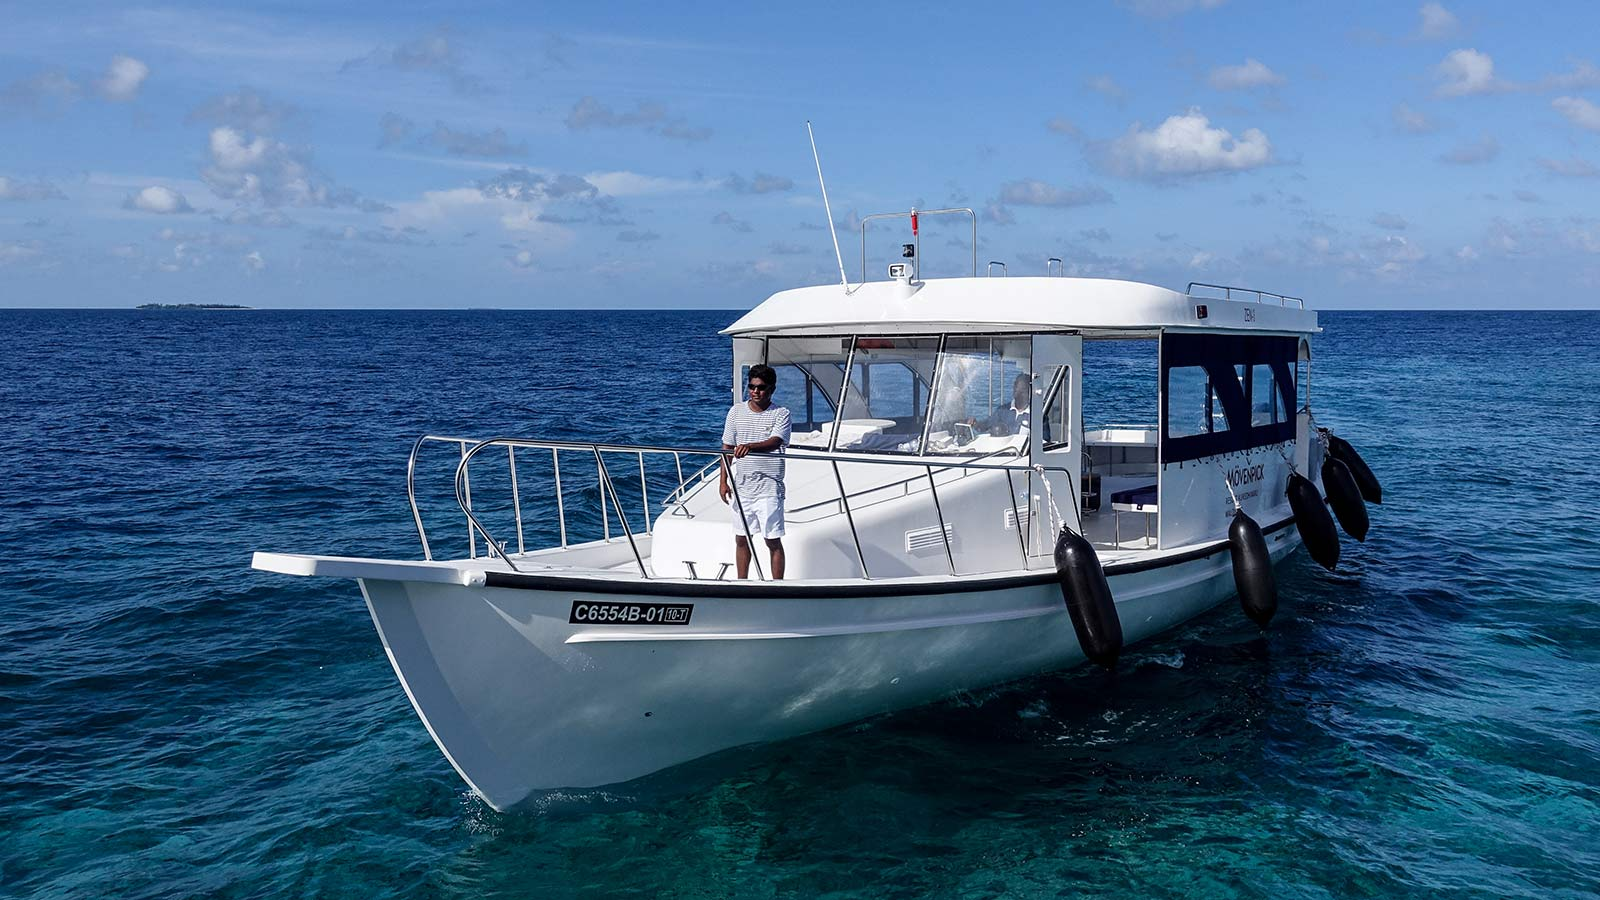 Scuba Diving Maldives Boats